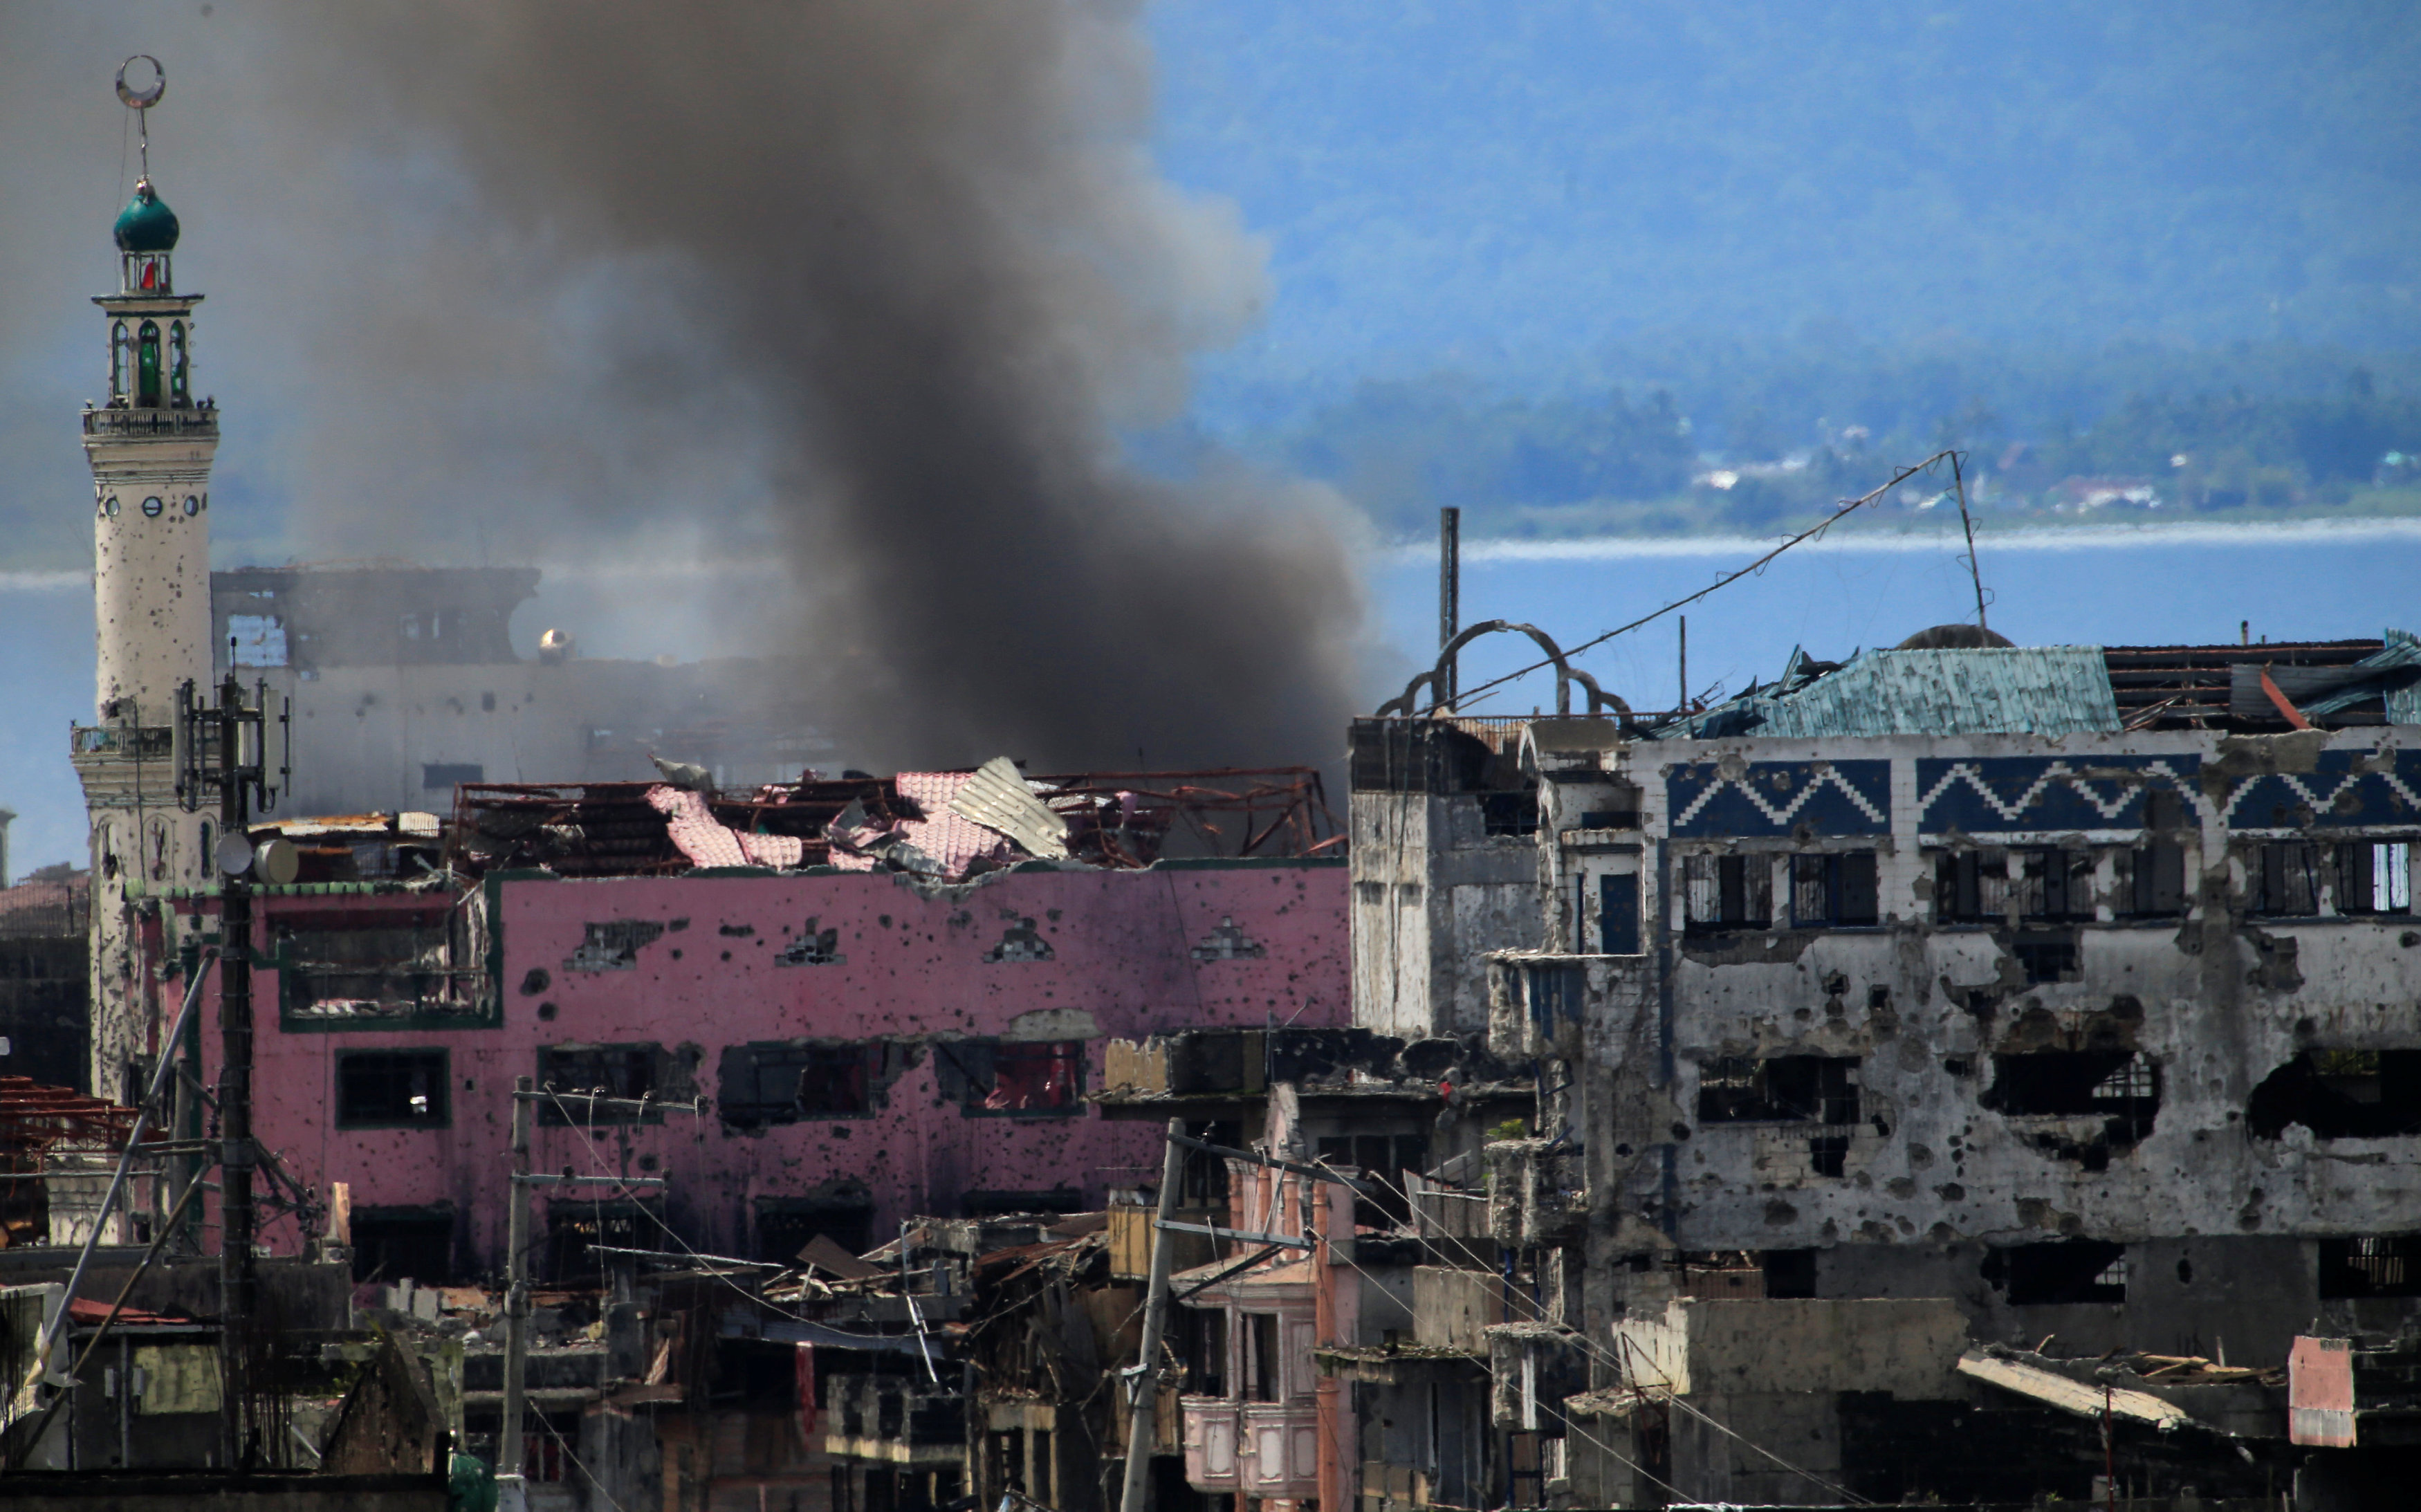 Smoke billows from a burning building as government troops continue their assault on its 105th day of clearing operations against pro-IS militants who have seized control of large parts of Marawi city, southern Philippines September 4, 2017.